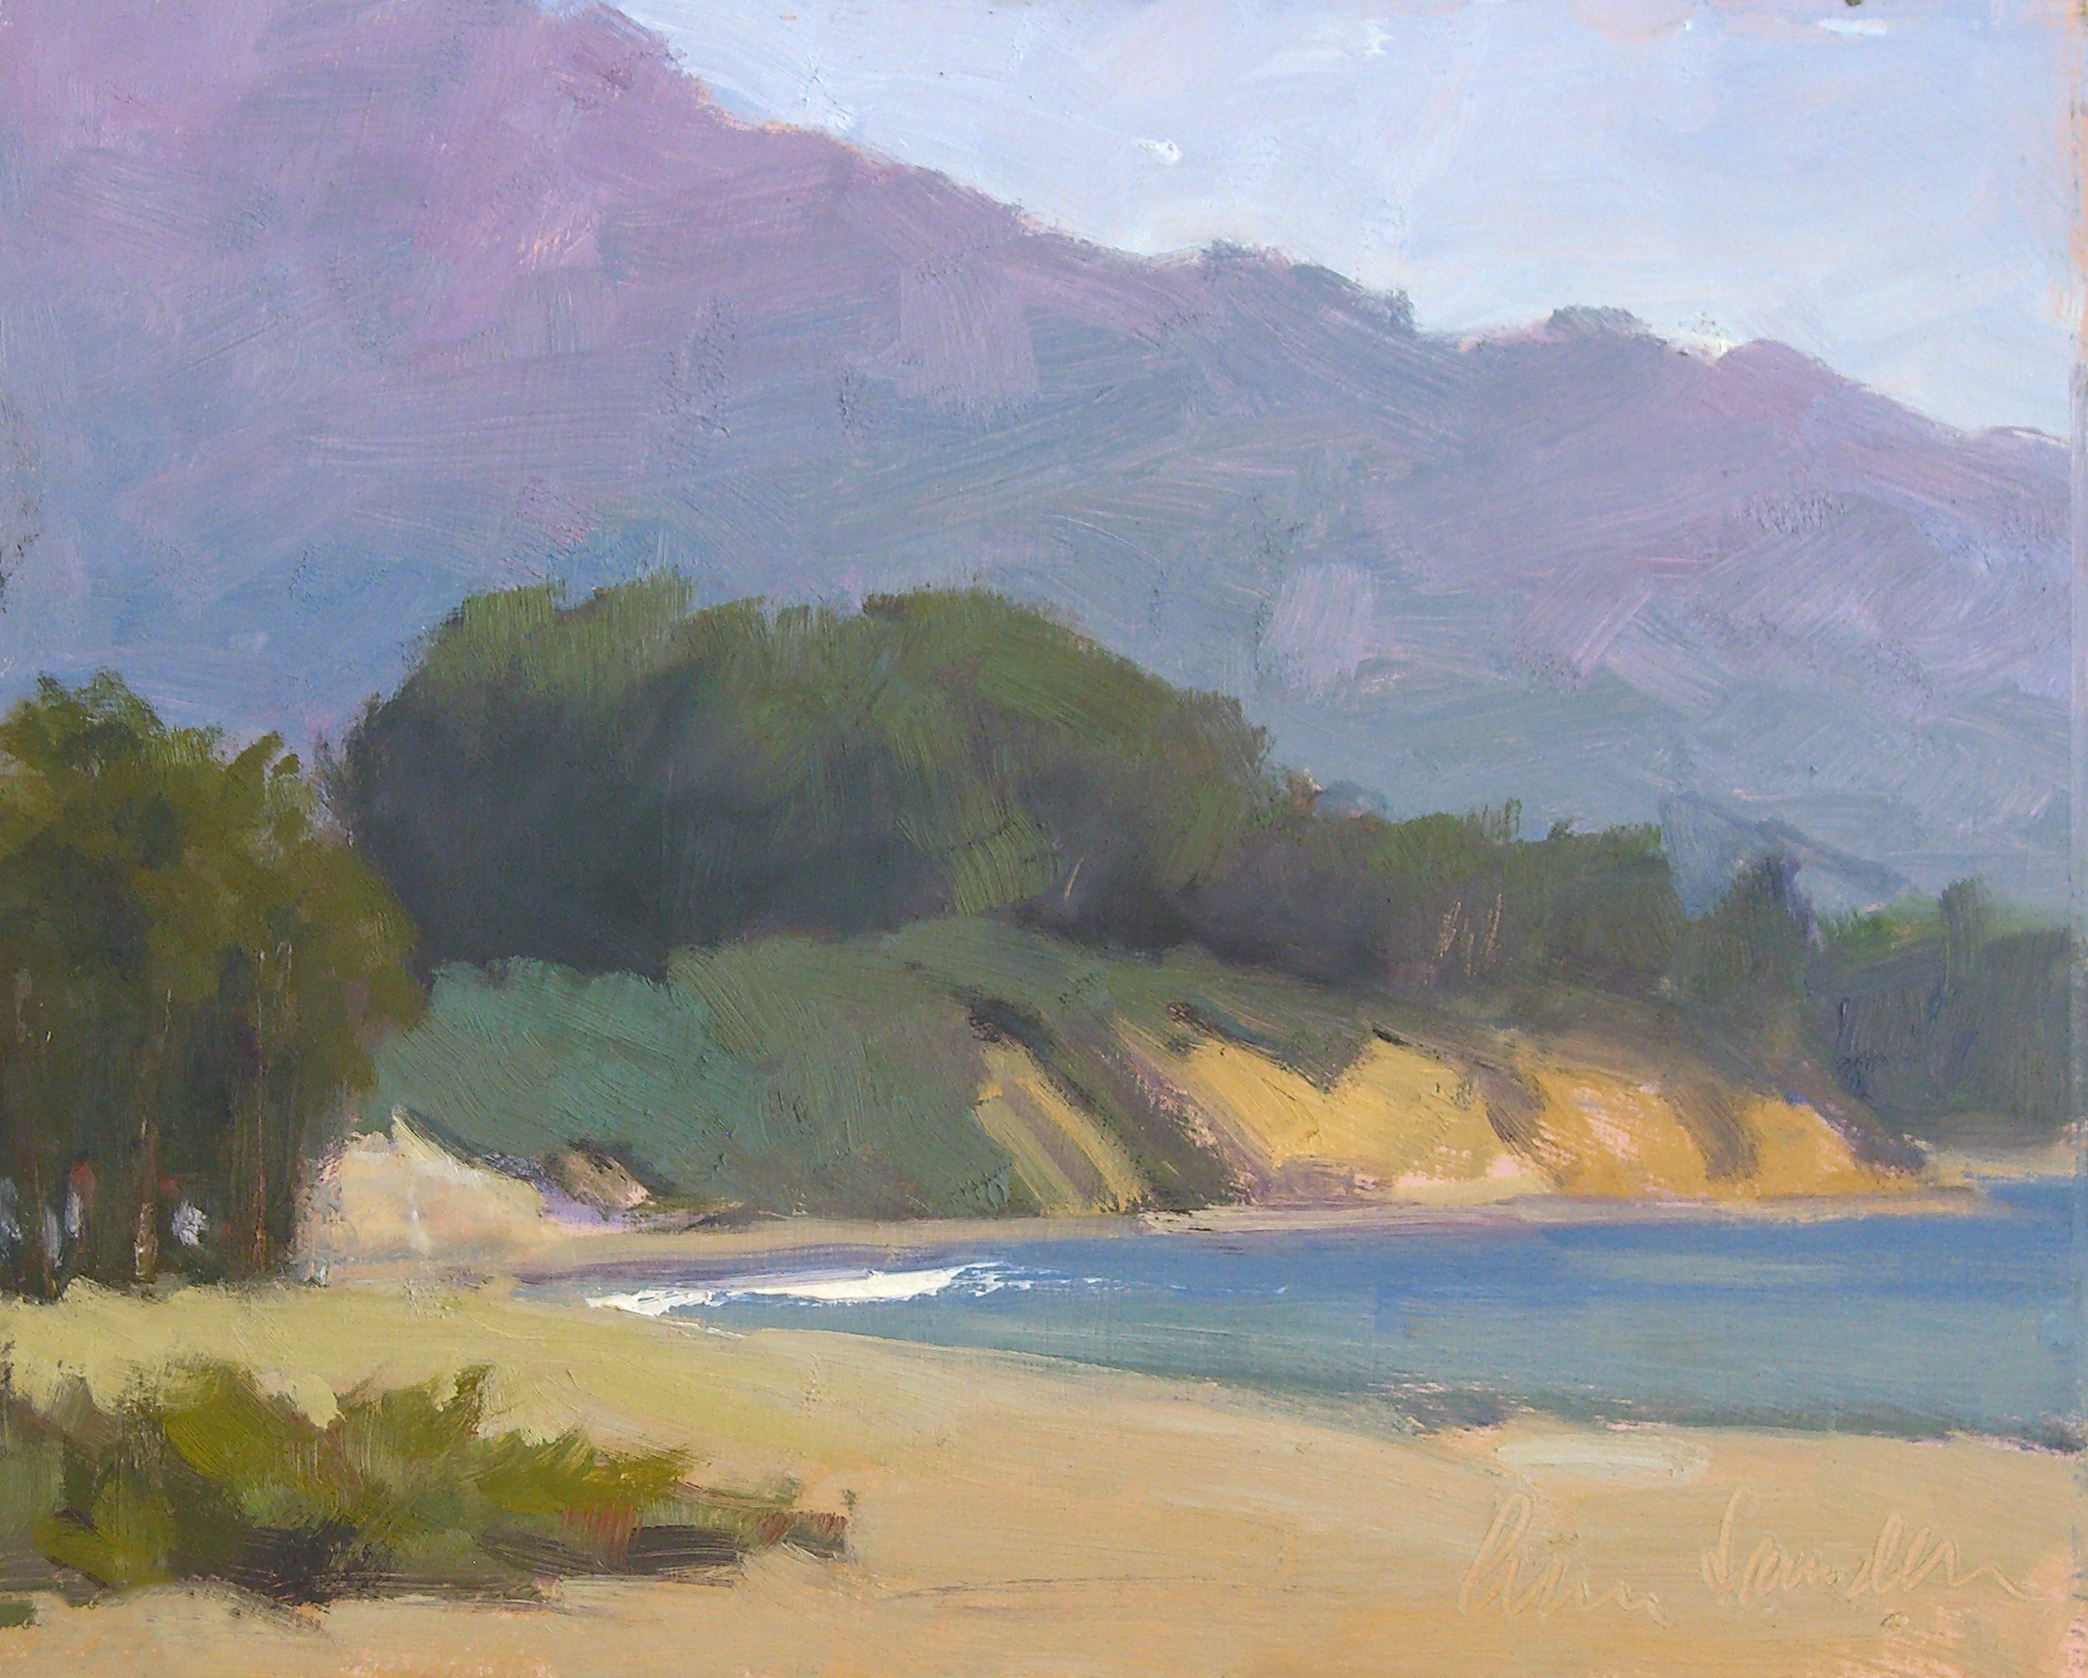 East Beach, oil, 8x10 SOLD